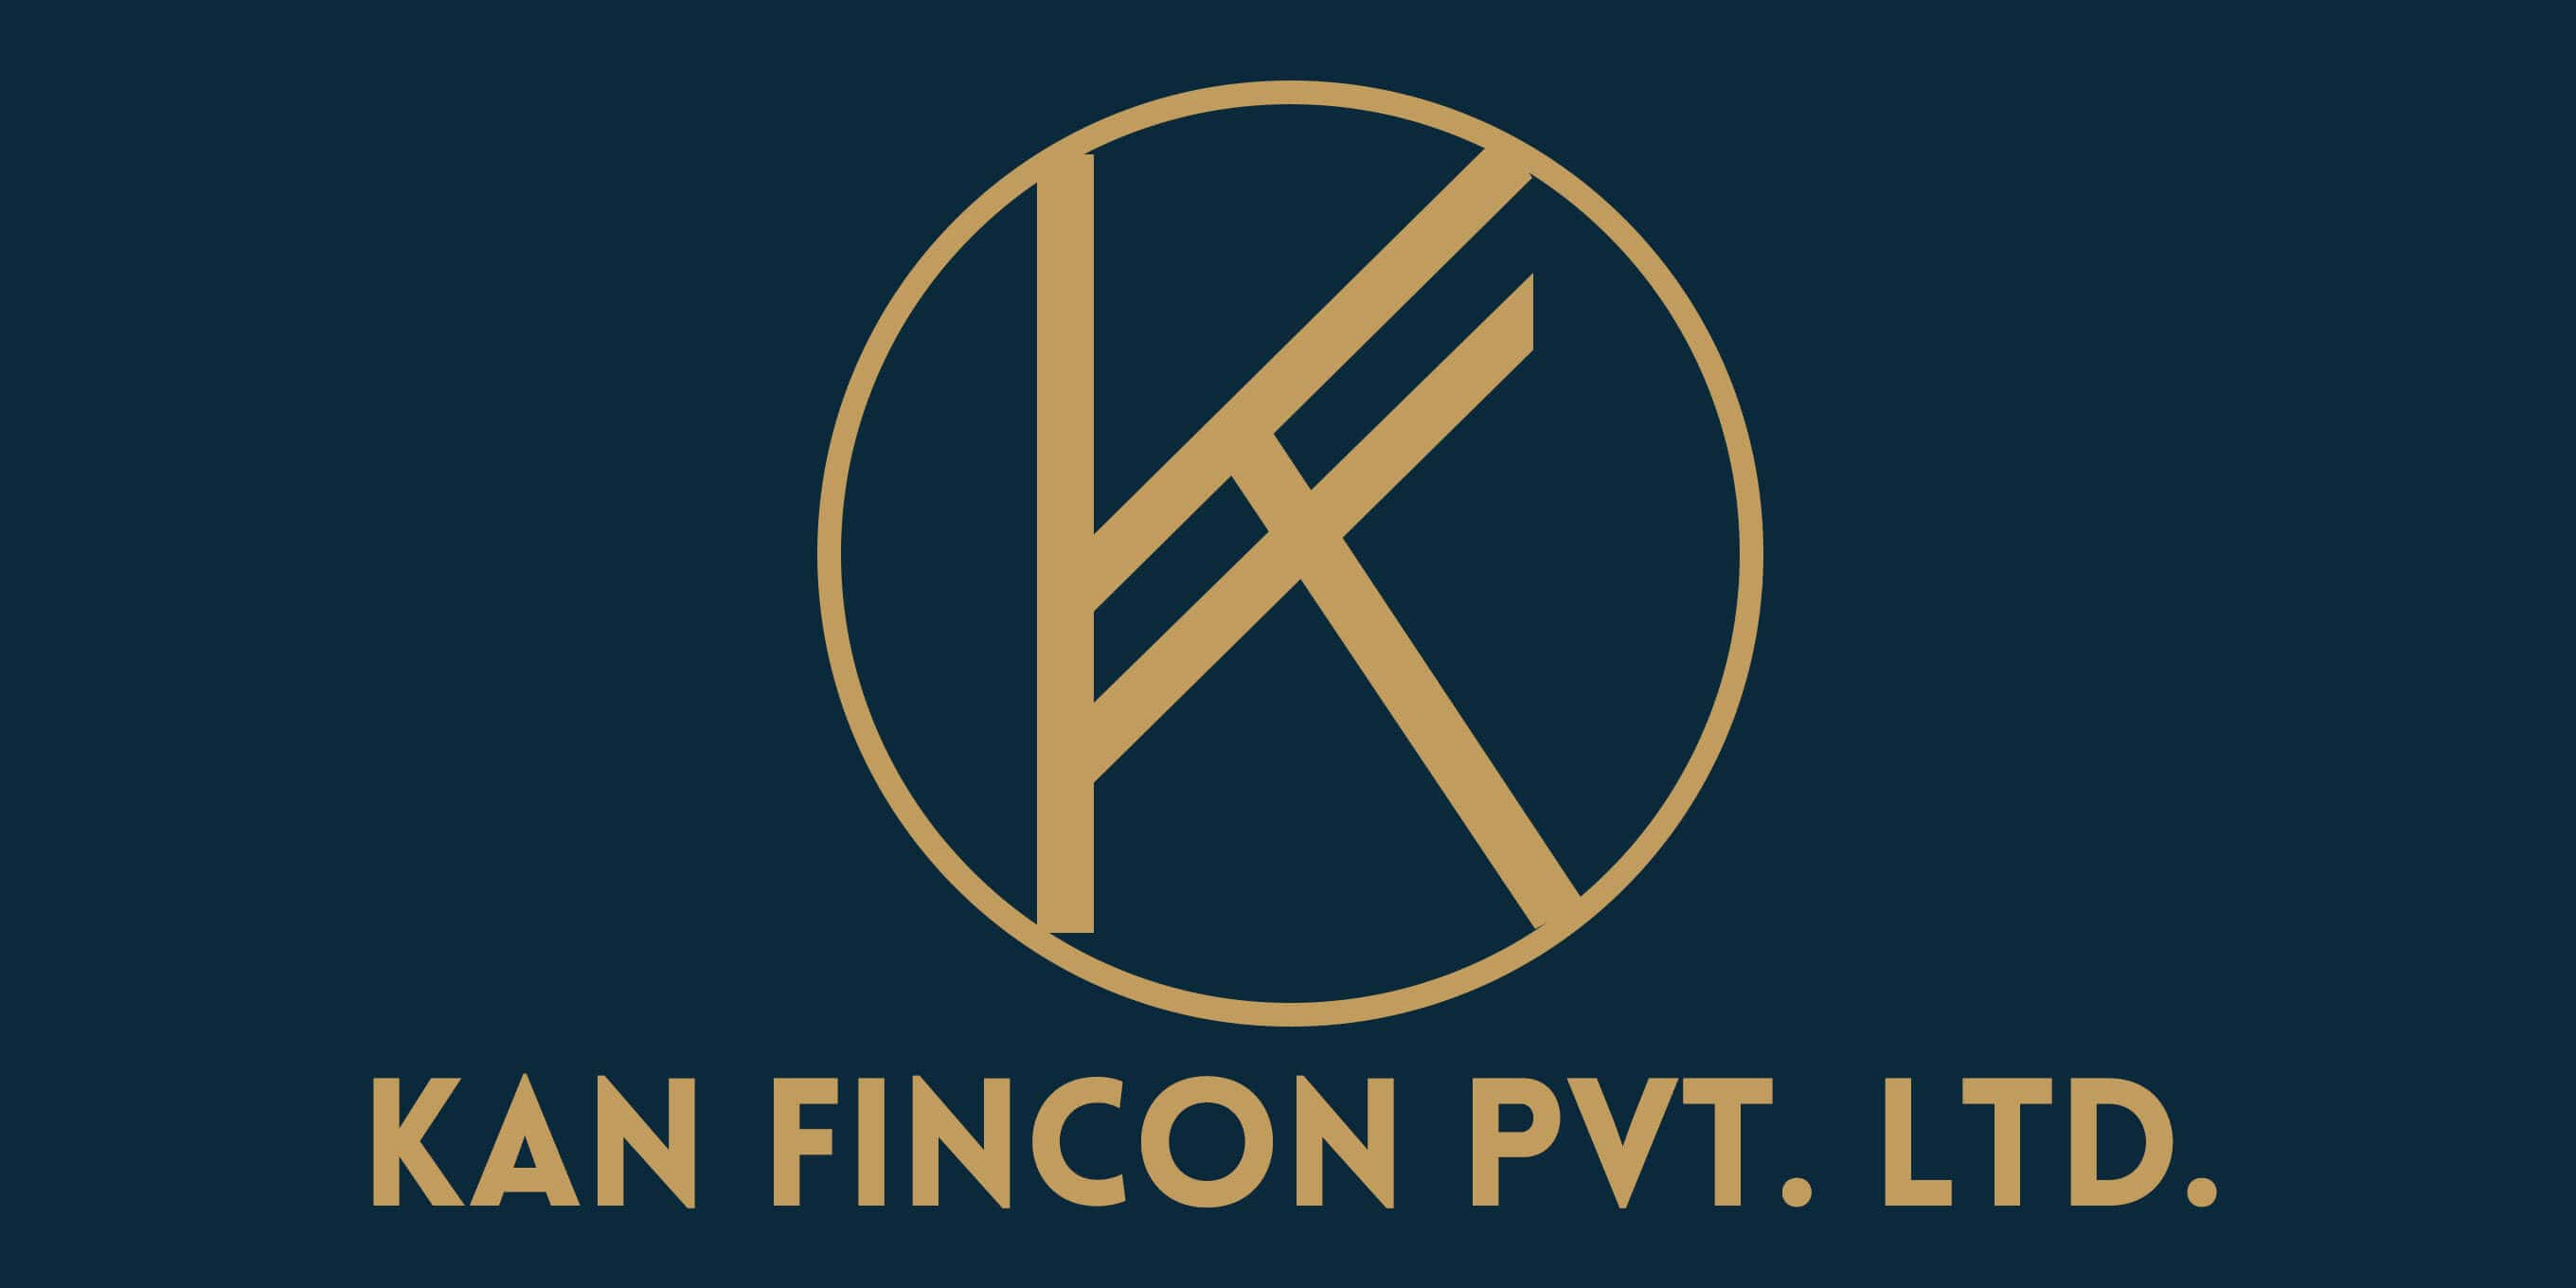 Kan Fincon Pvt. Ltd.